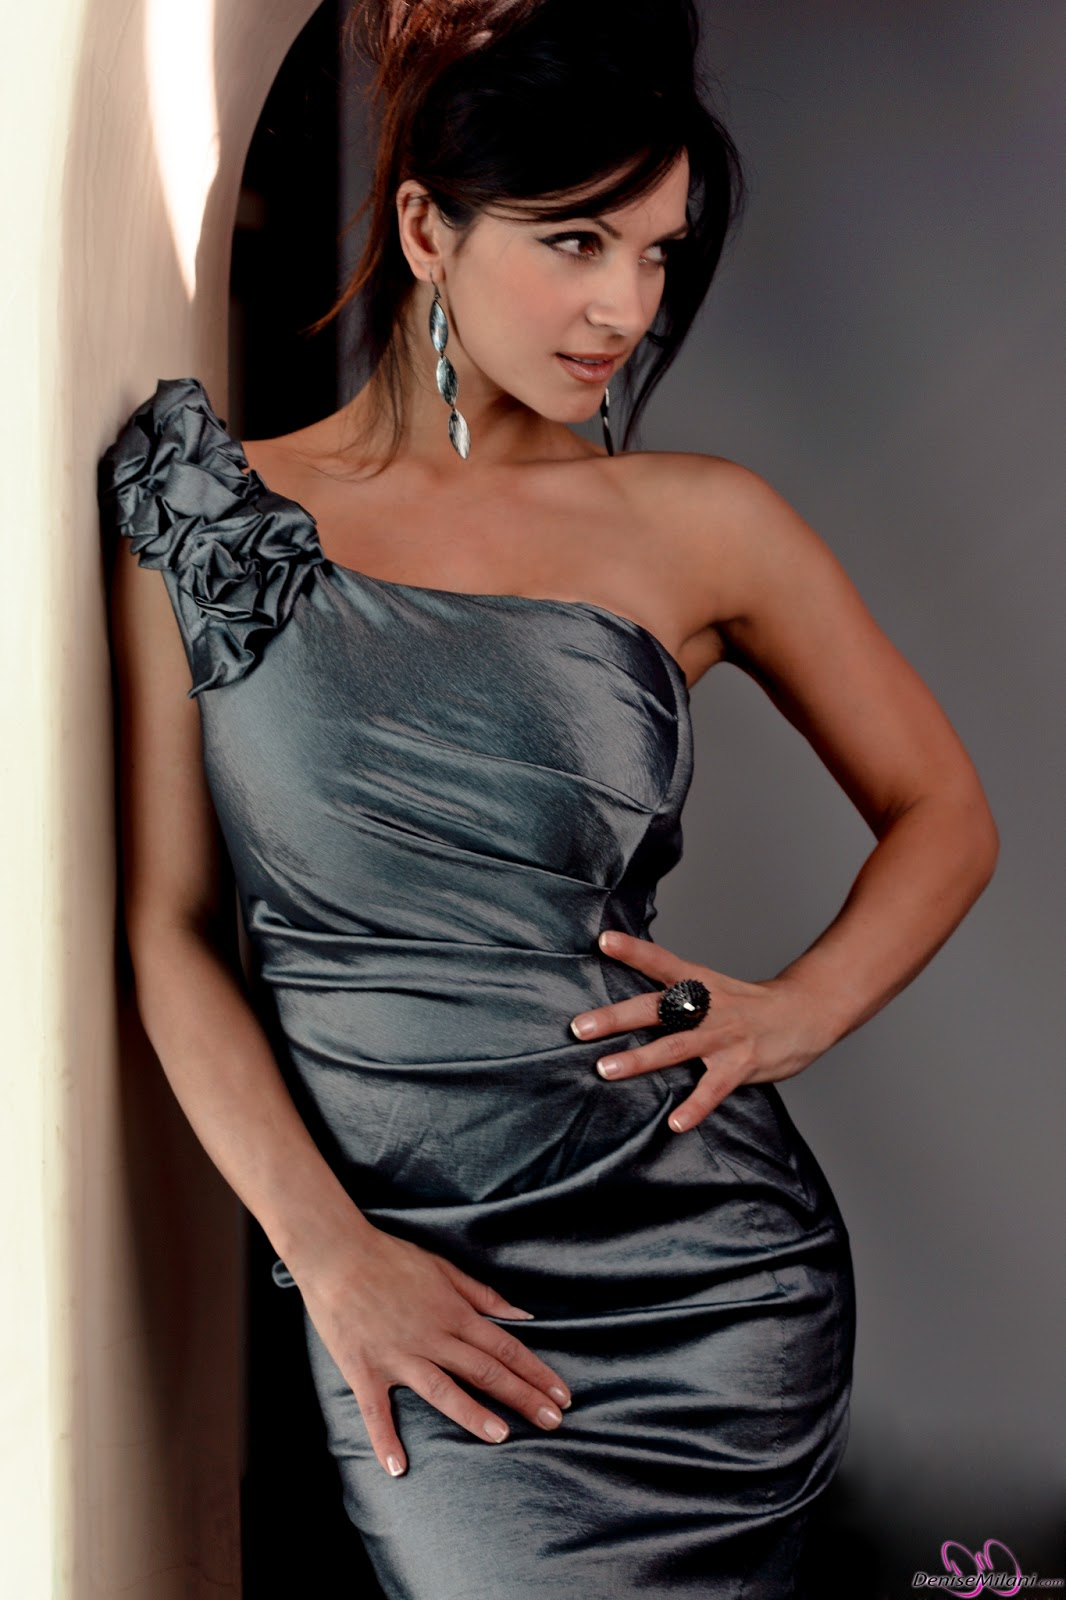 denise milani in a dress - photo #5